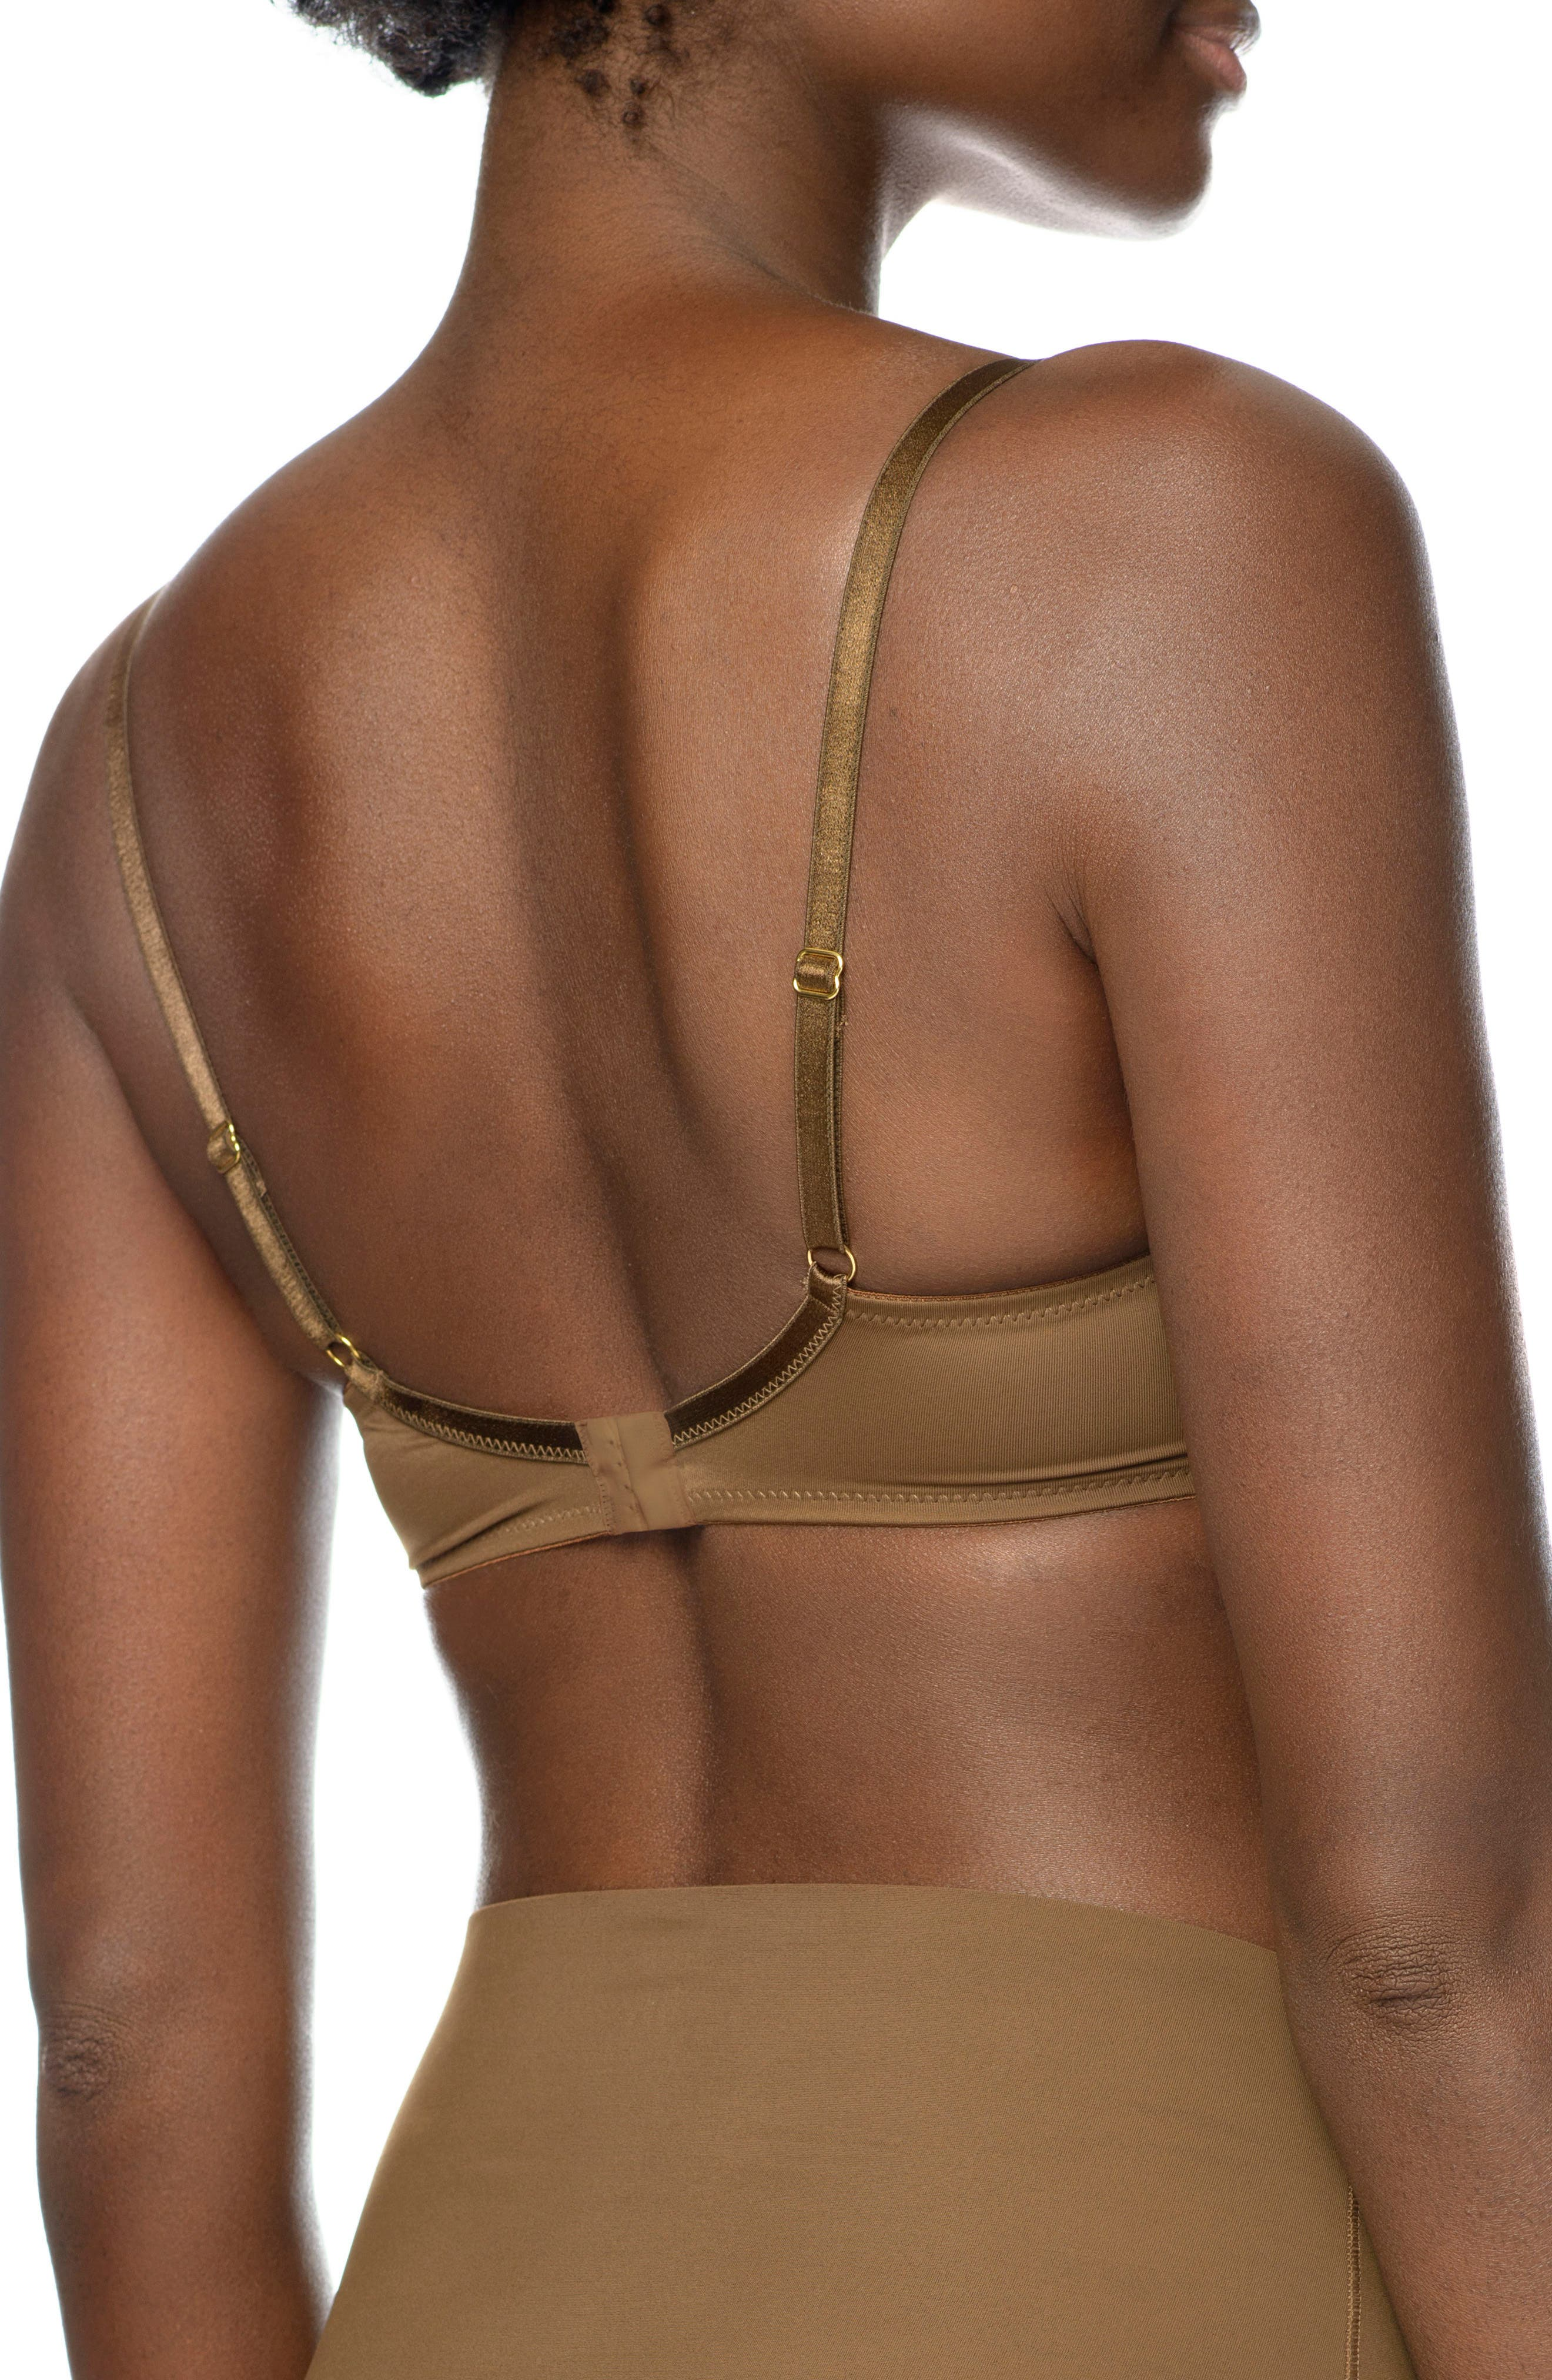 NUBIAN SKIN Naked High Waist Briefs, Main, color, 200